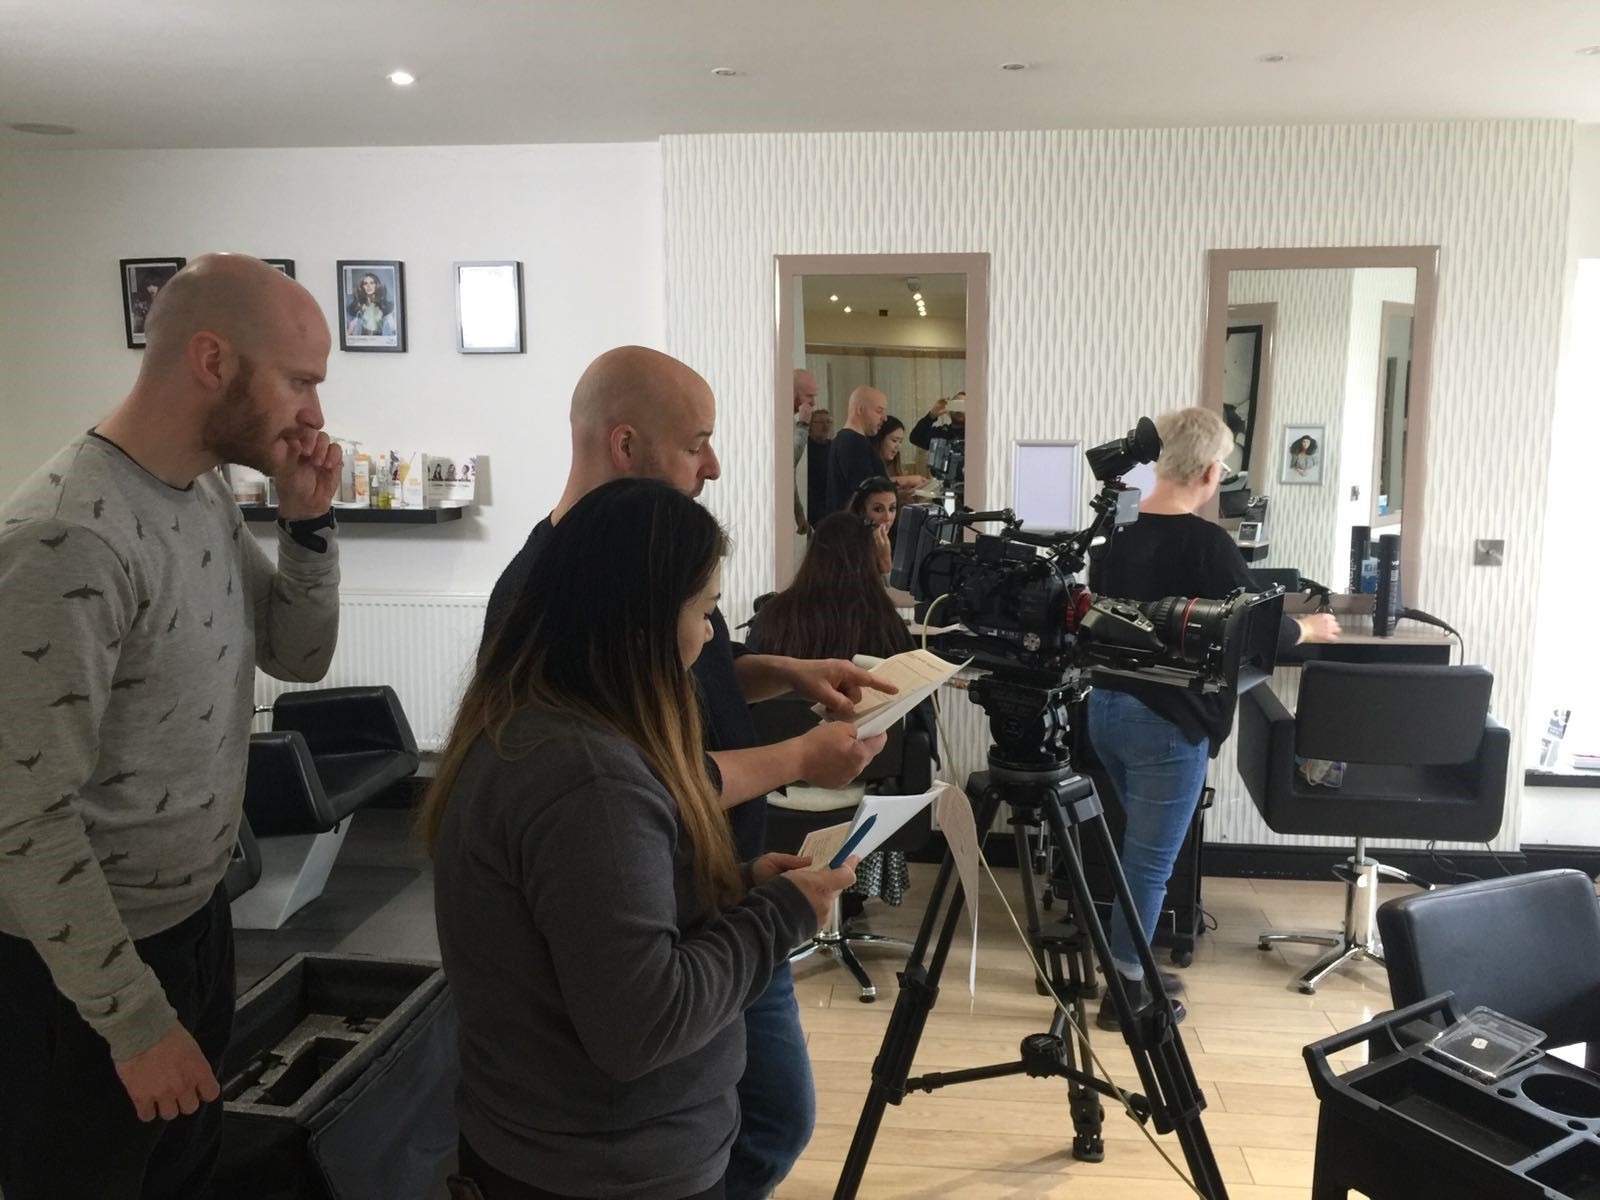 Channel 4 on location in the salon random acts